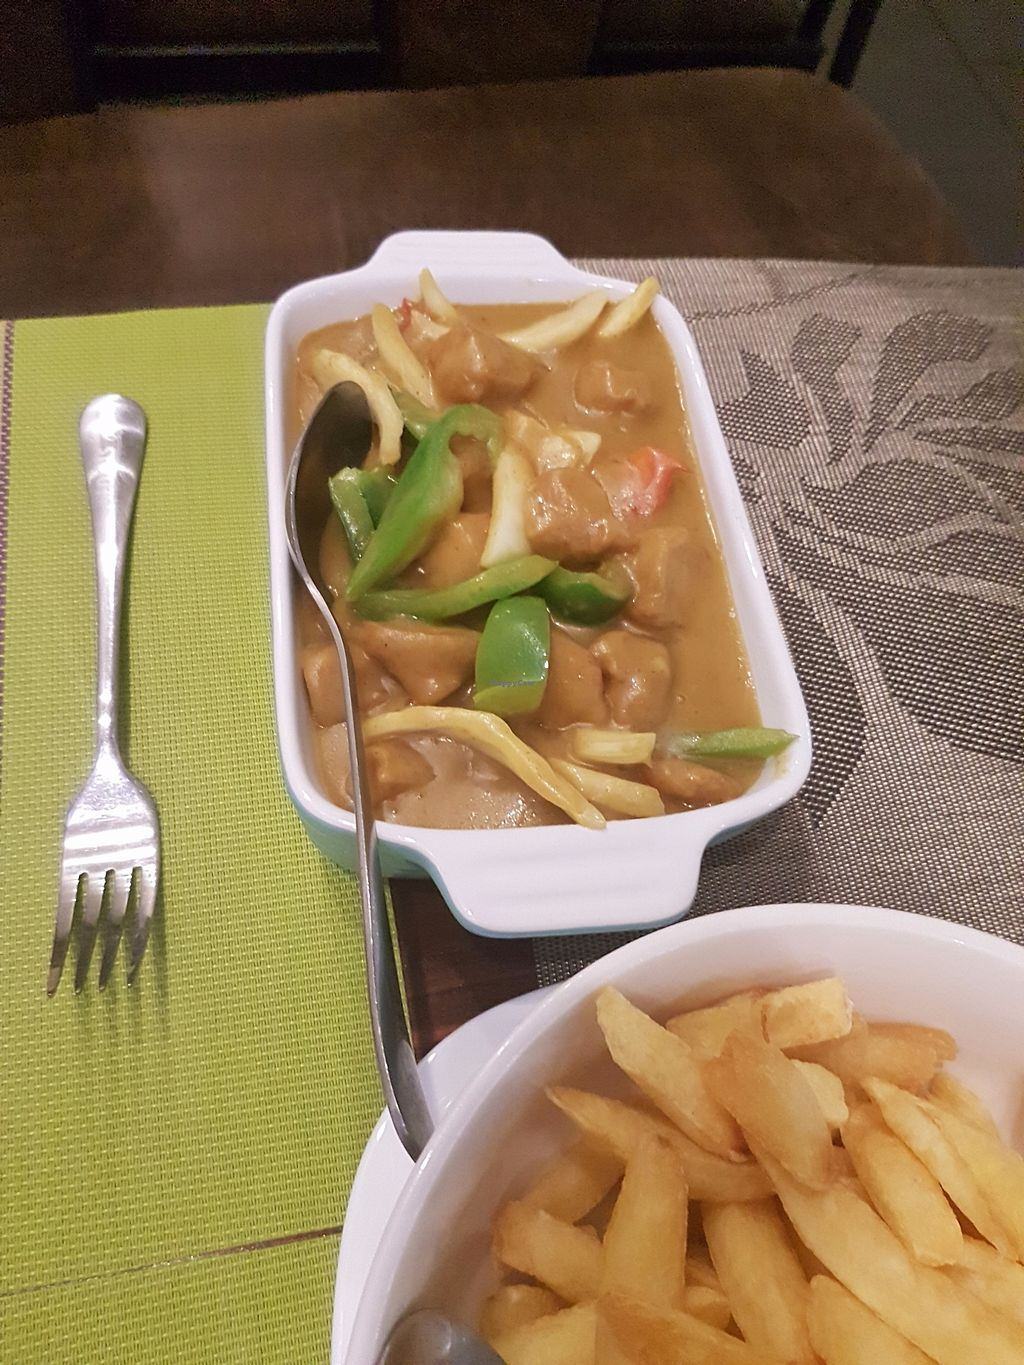 """Photo of Lotus Vegetarian Cuisine  by <a href=""""/members/profile/LouiseO%27Neill"""">LouiseO'Neill</a> <br/>chicken curry <br/> September 28, 2017  - <a href='/contact/abuse/image/85472/309302'>Report</a>"""